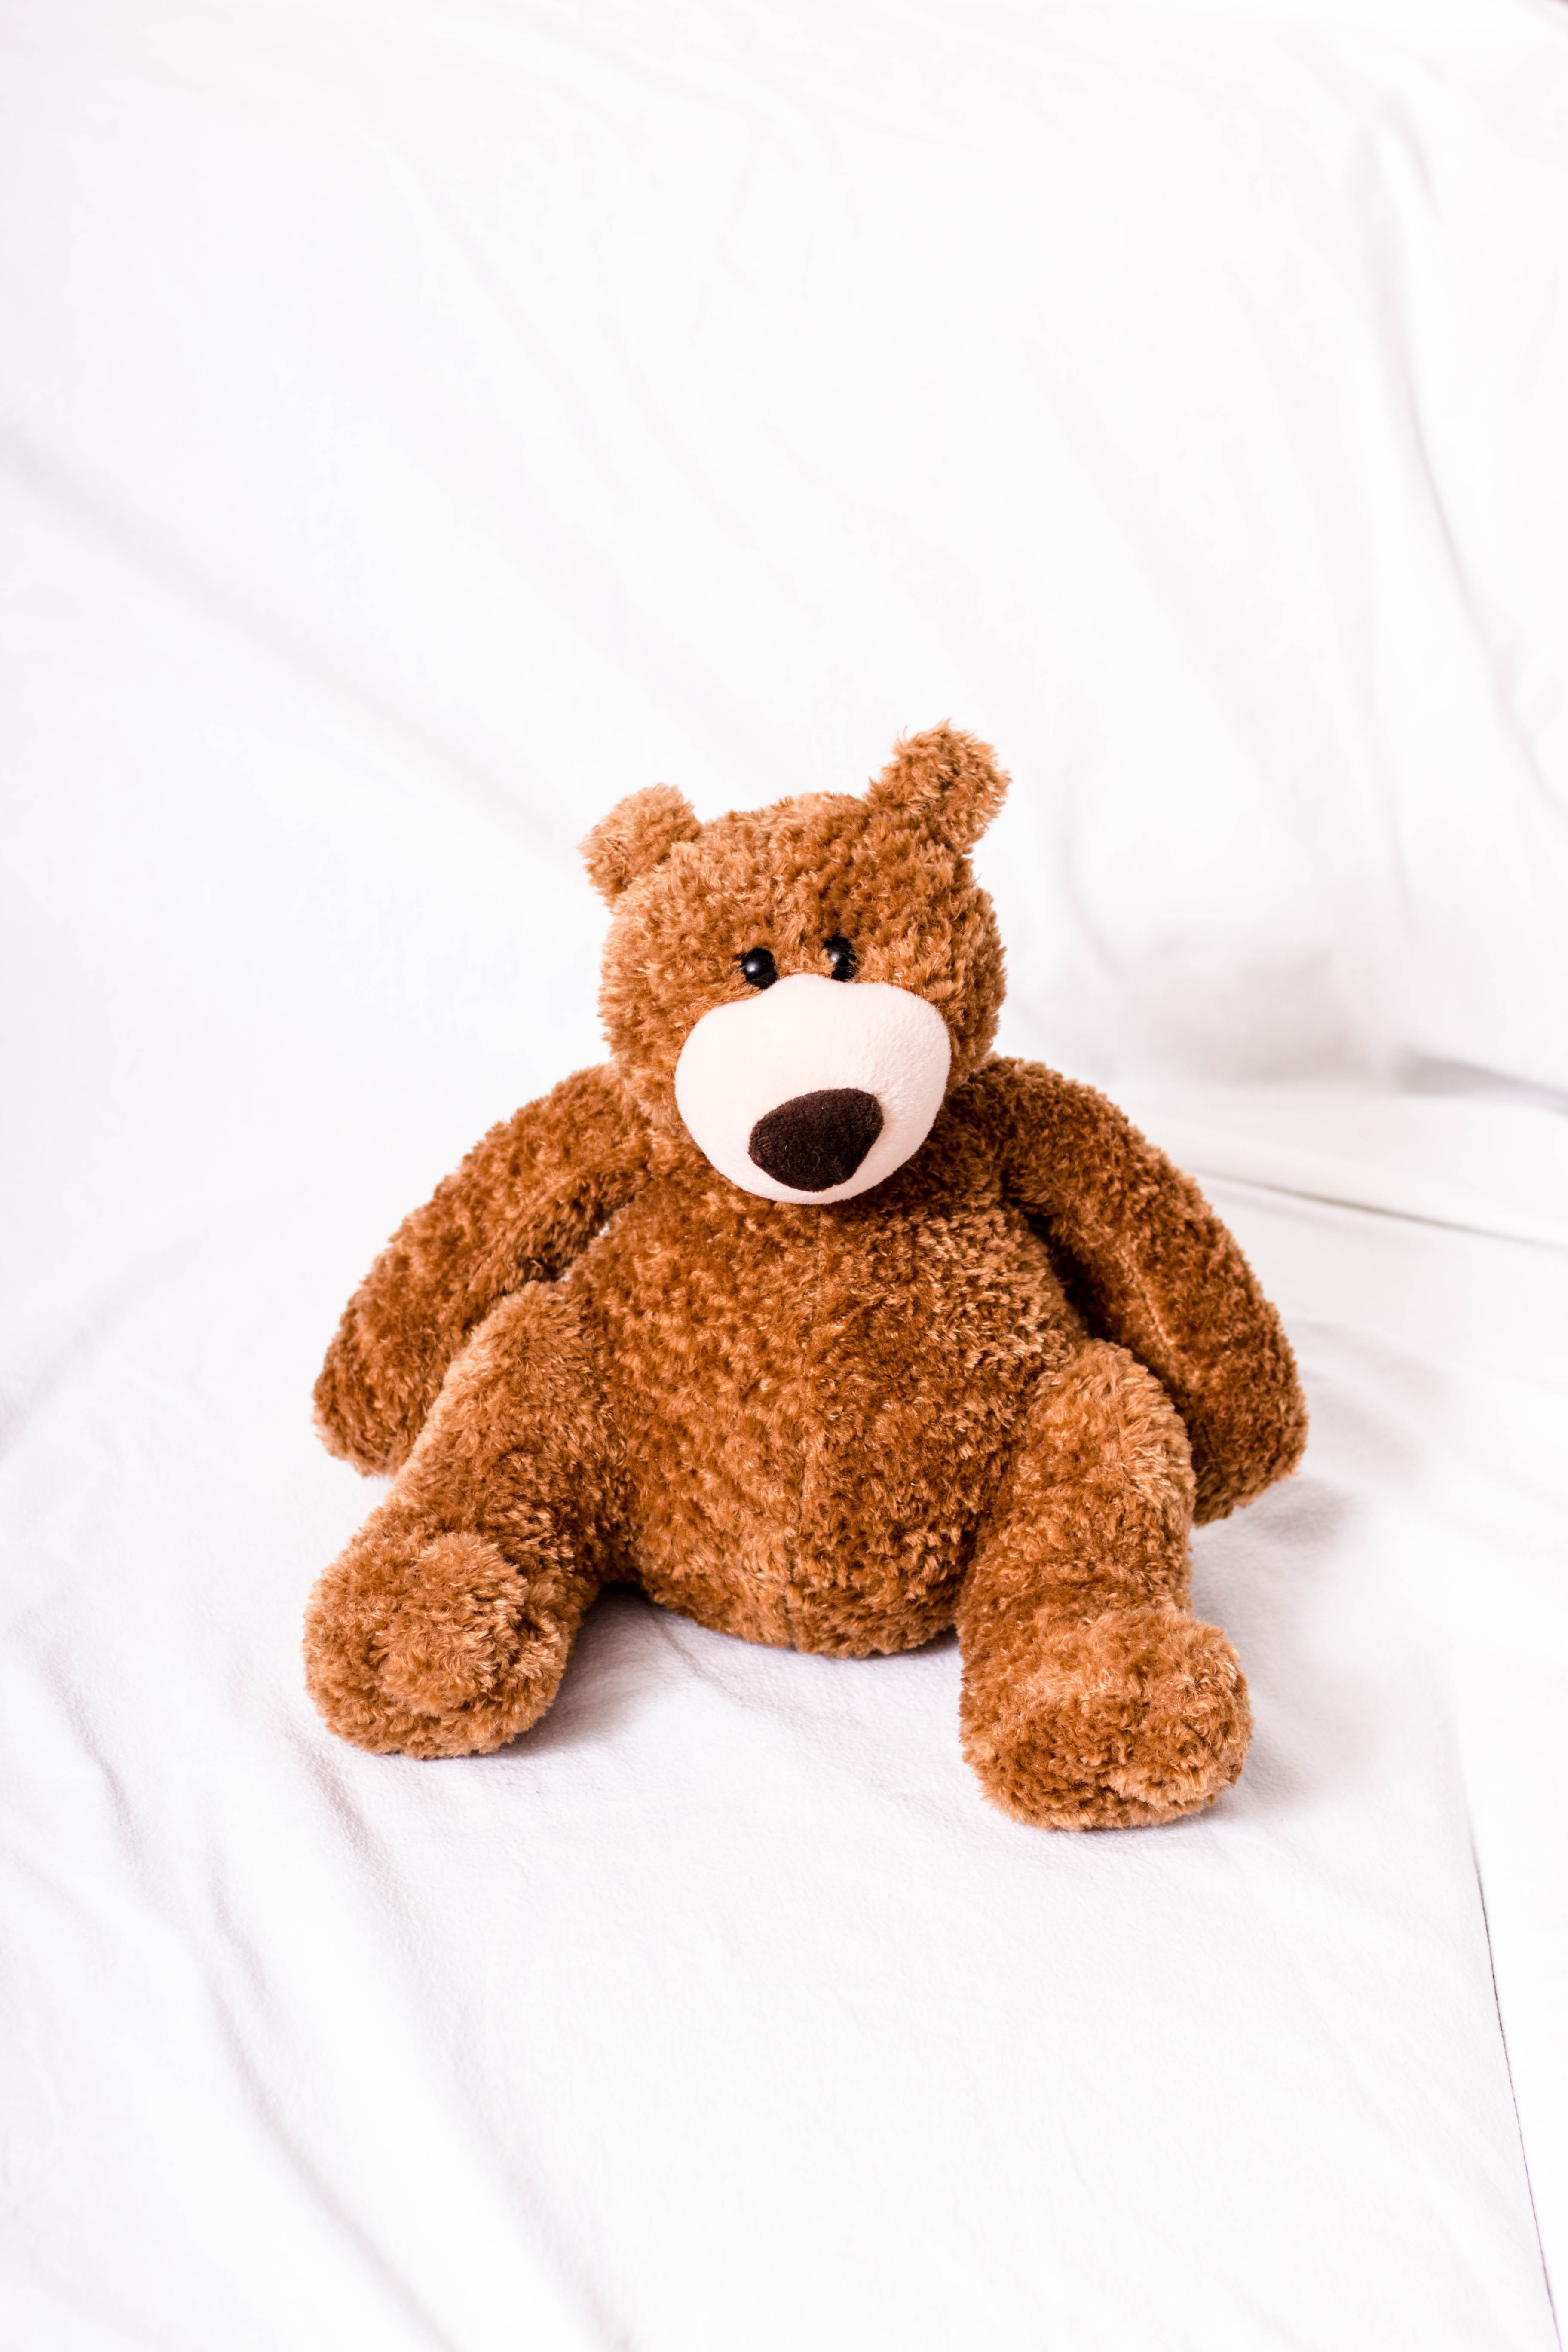 Pictures of brown teddy bears Goldilocks and the Three Bears Activities, Crafts, and